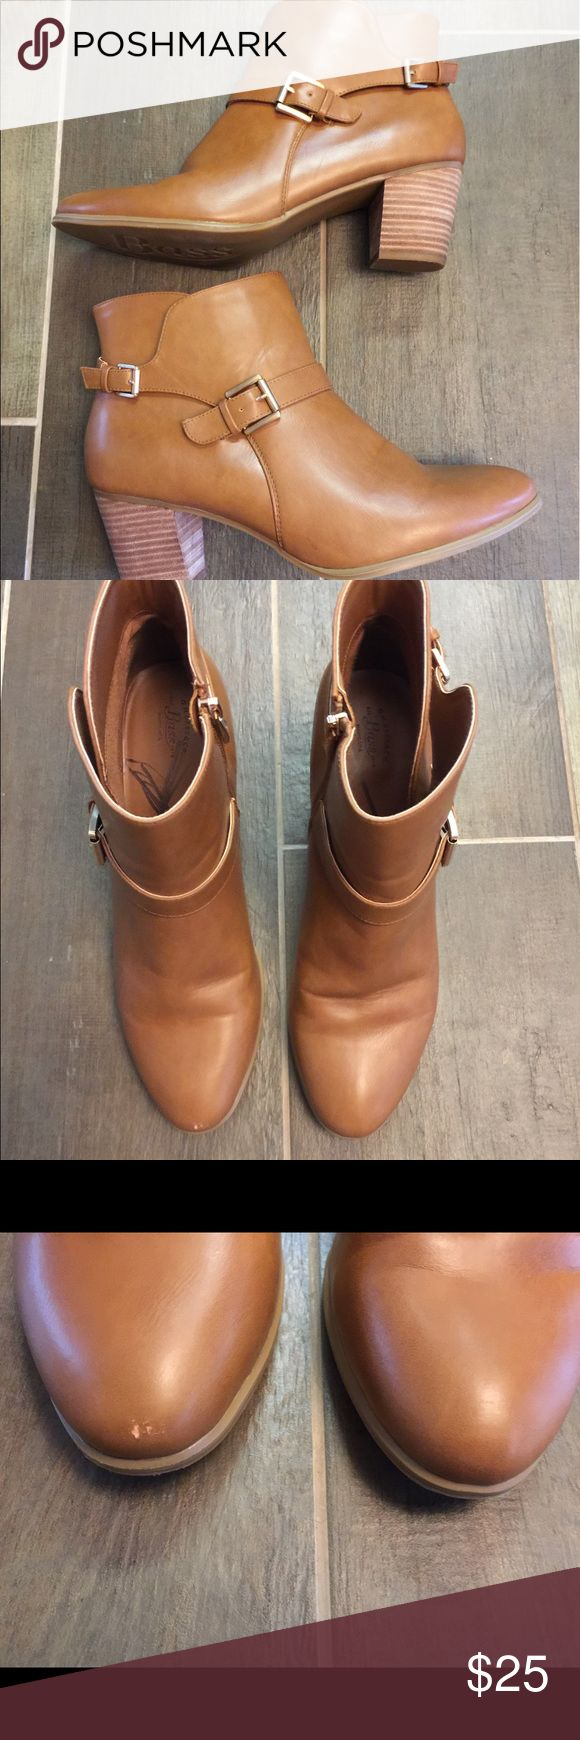 Bass brown heeled boots size 11. Bass brown heeled boots size 11. This is a great pair of ankle boots with side zipper. They have a 3 inch heel. One boot has a small scuff on the toe but otherwise great shape. Please view all pictures. Bass Shoes Heeled Boots